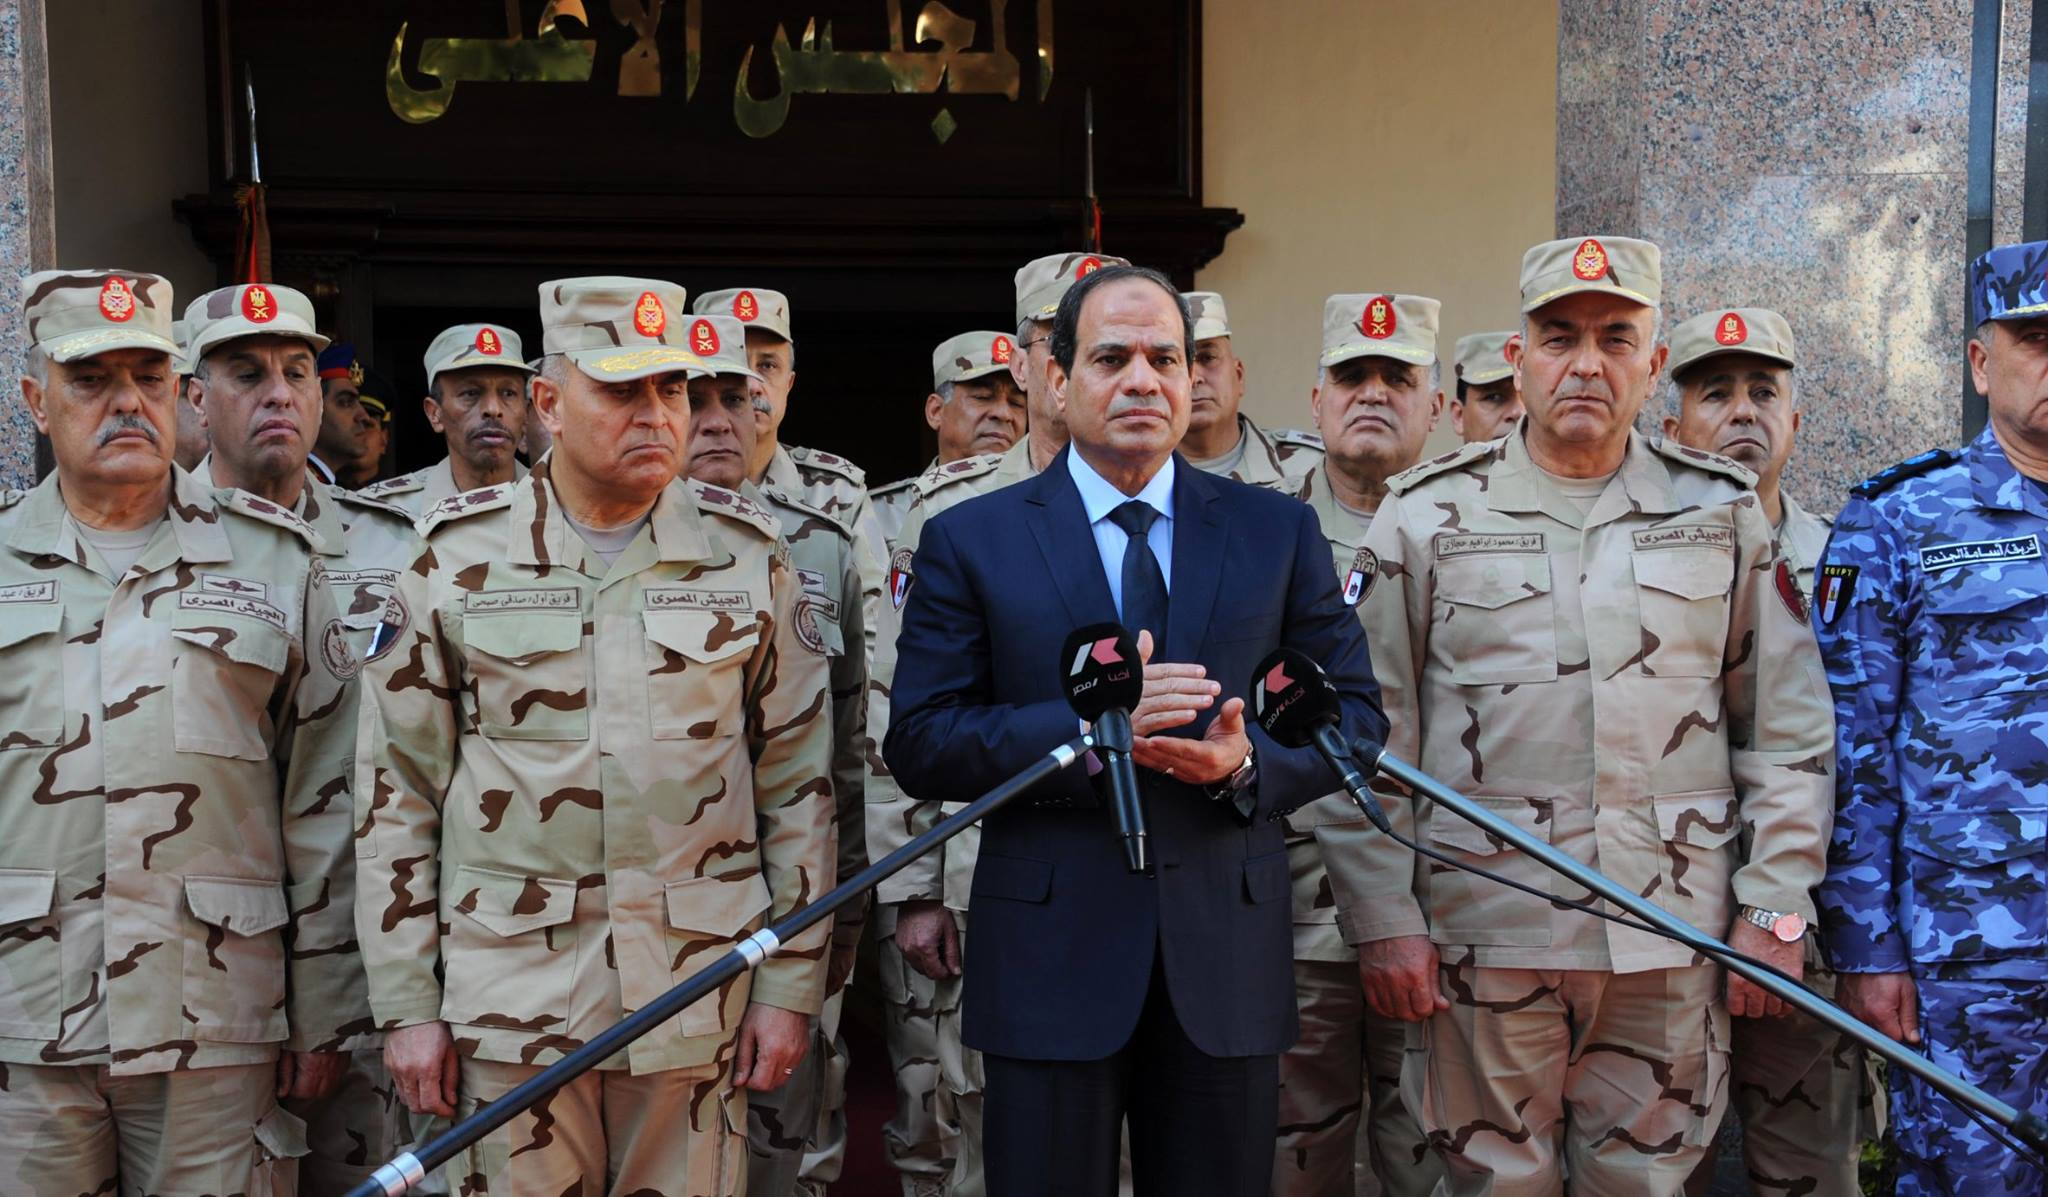 President Abdel Fattah Al-Sisi adresses the nation on 31 January 2015 following series of deadly operations in North Sinai claimed by 'State of Sinai'  (Photo by presidential office to DNE)